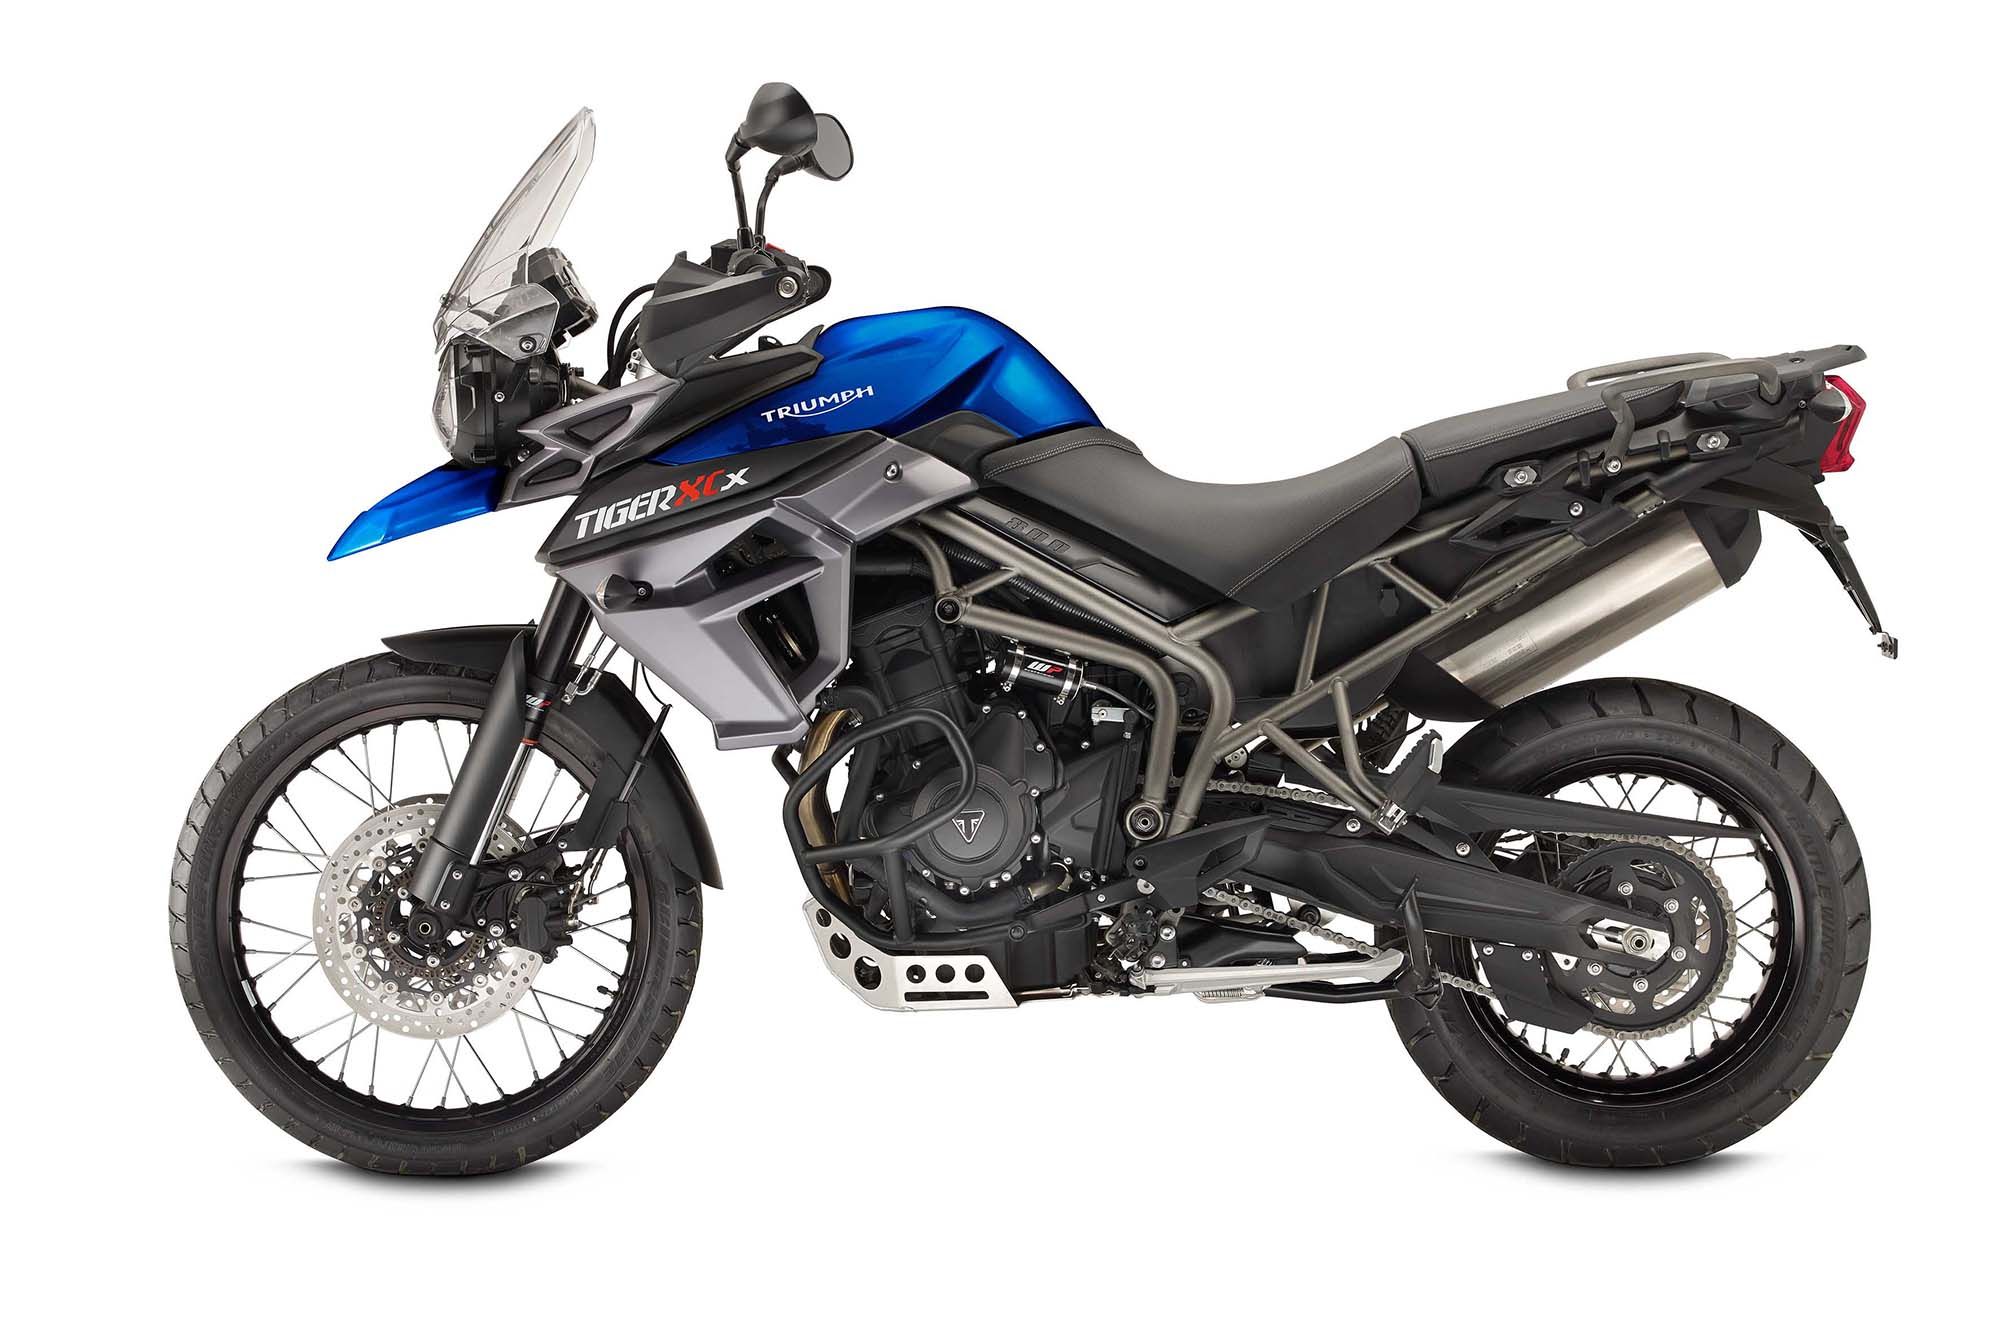 medium resolution of 2015 triumph tiger 800 xcx another flavor of adv